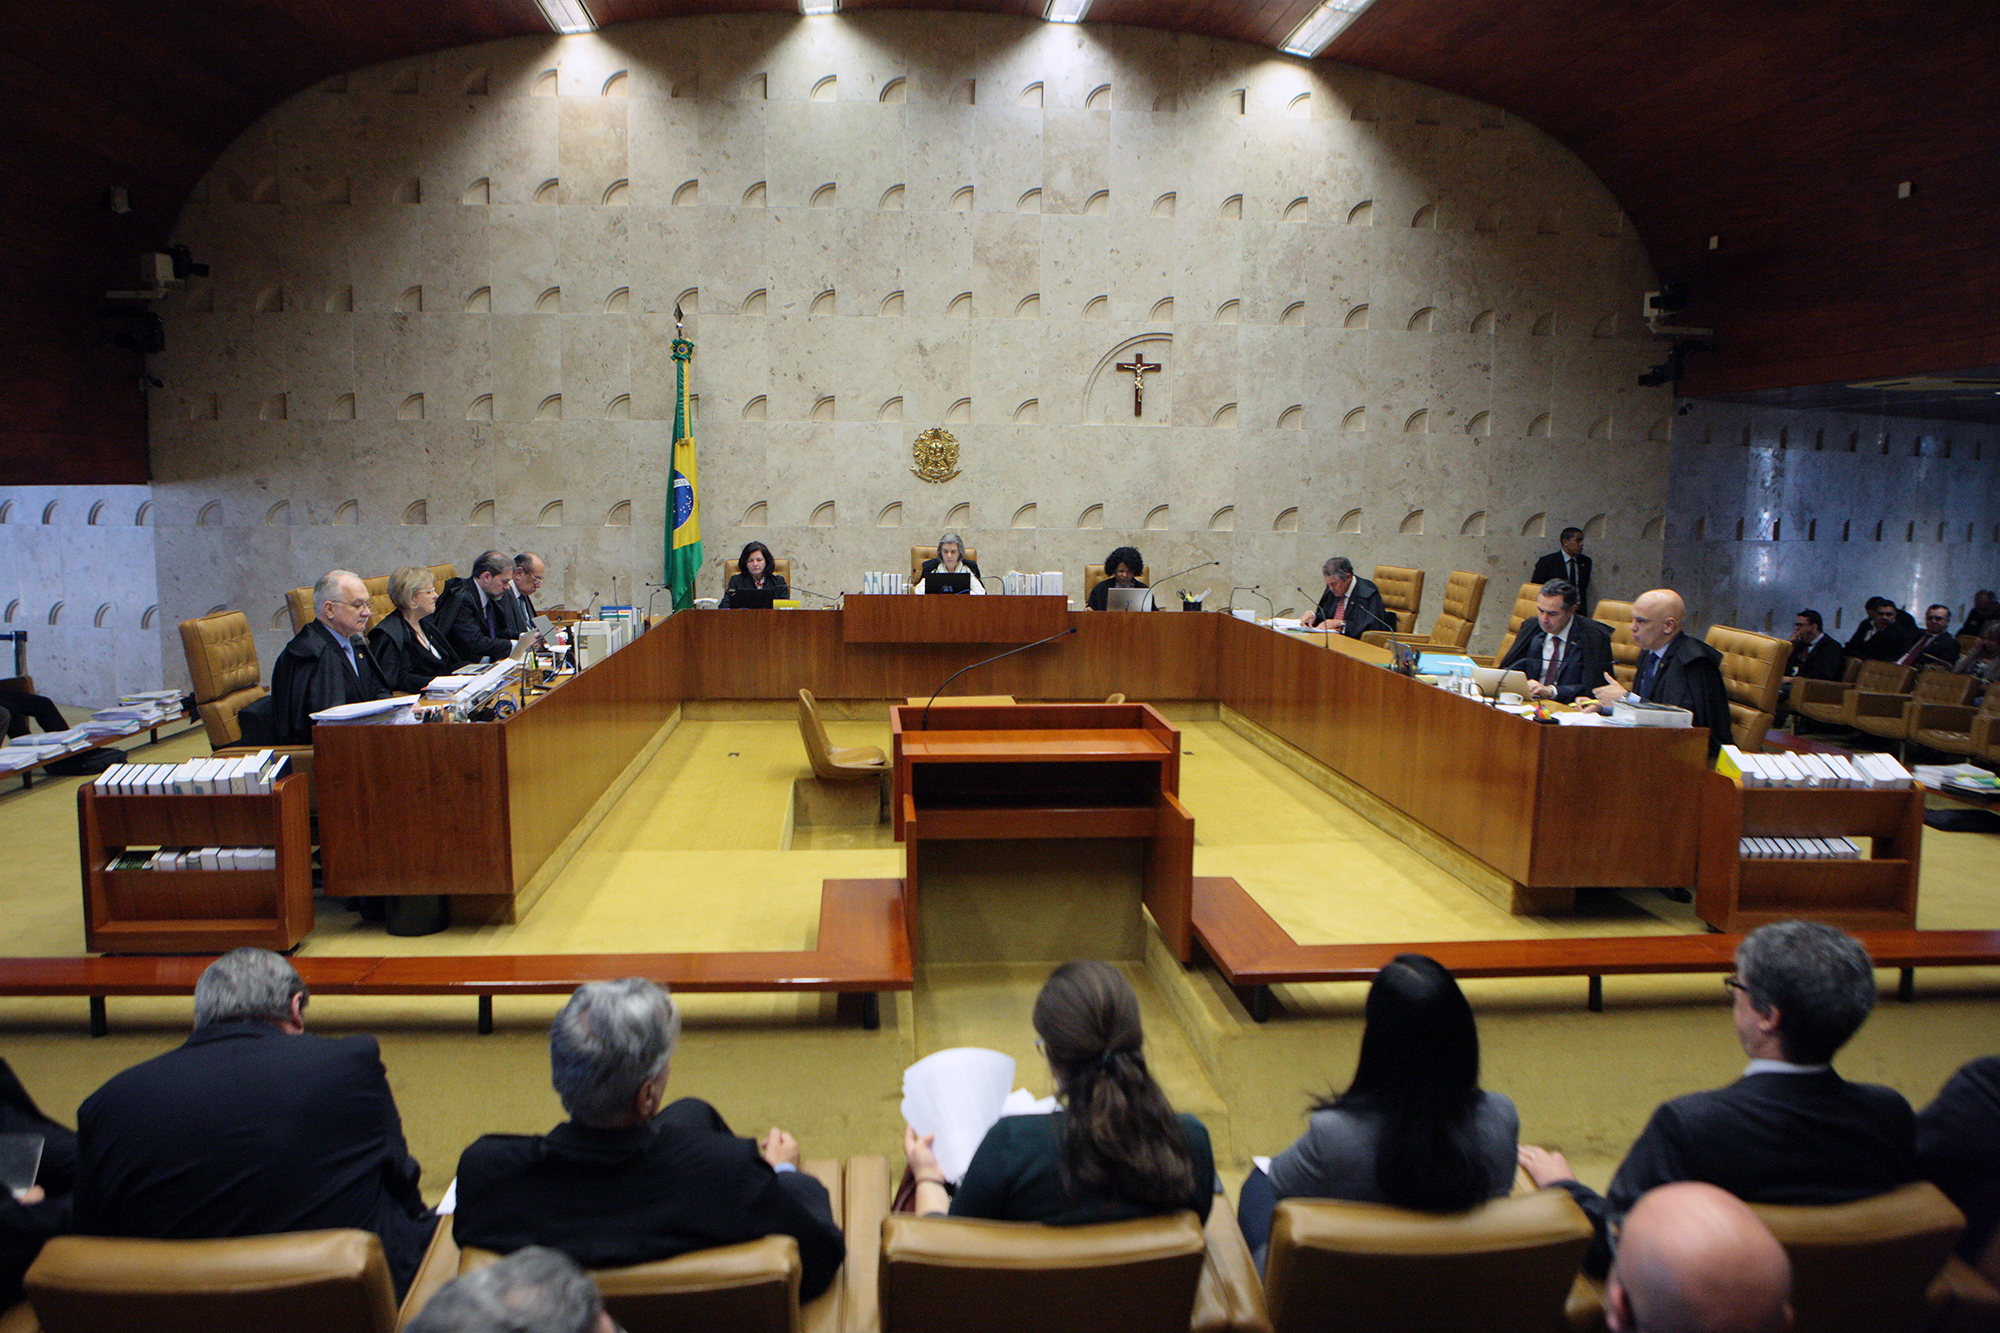 supremo-tribunal-federal-audiencia